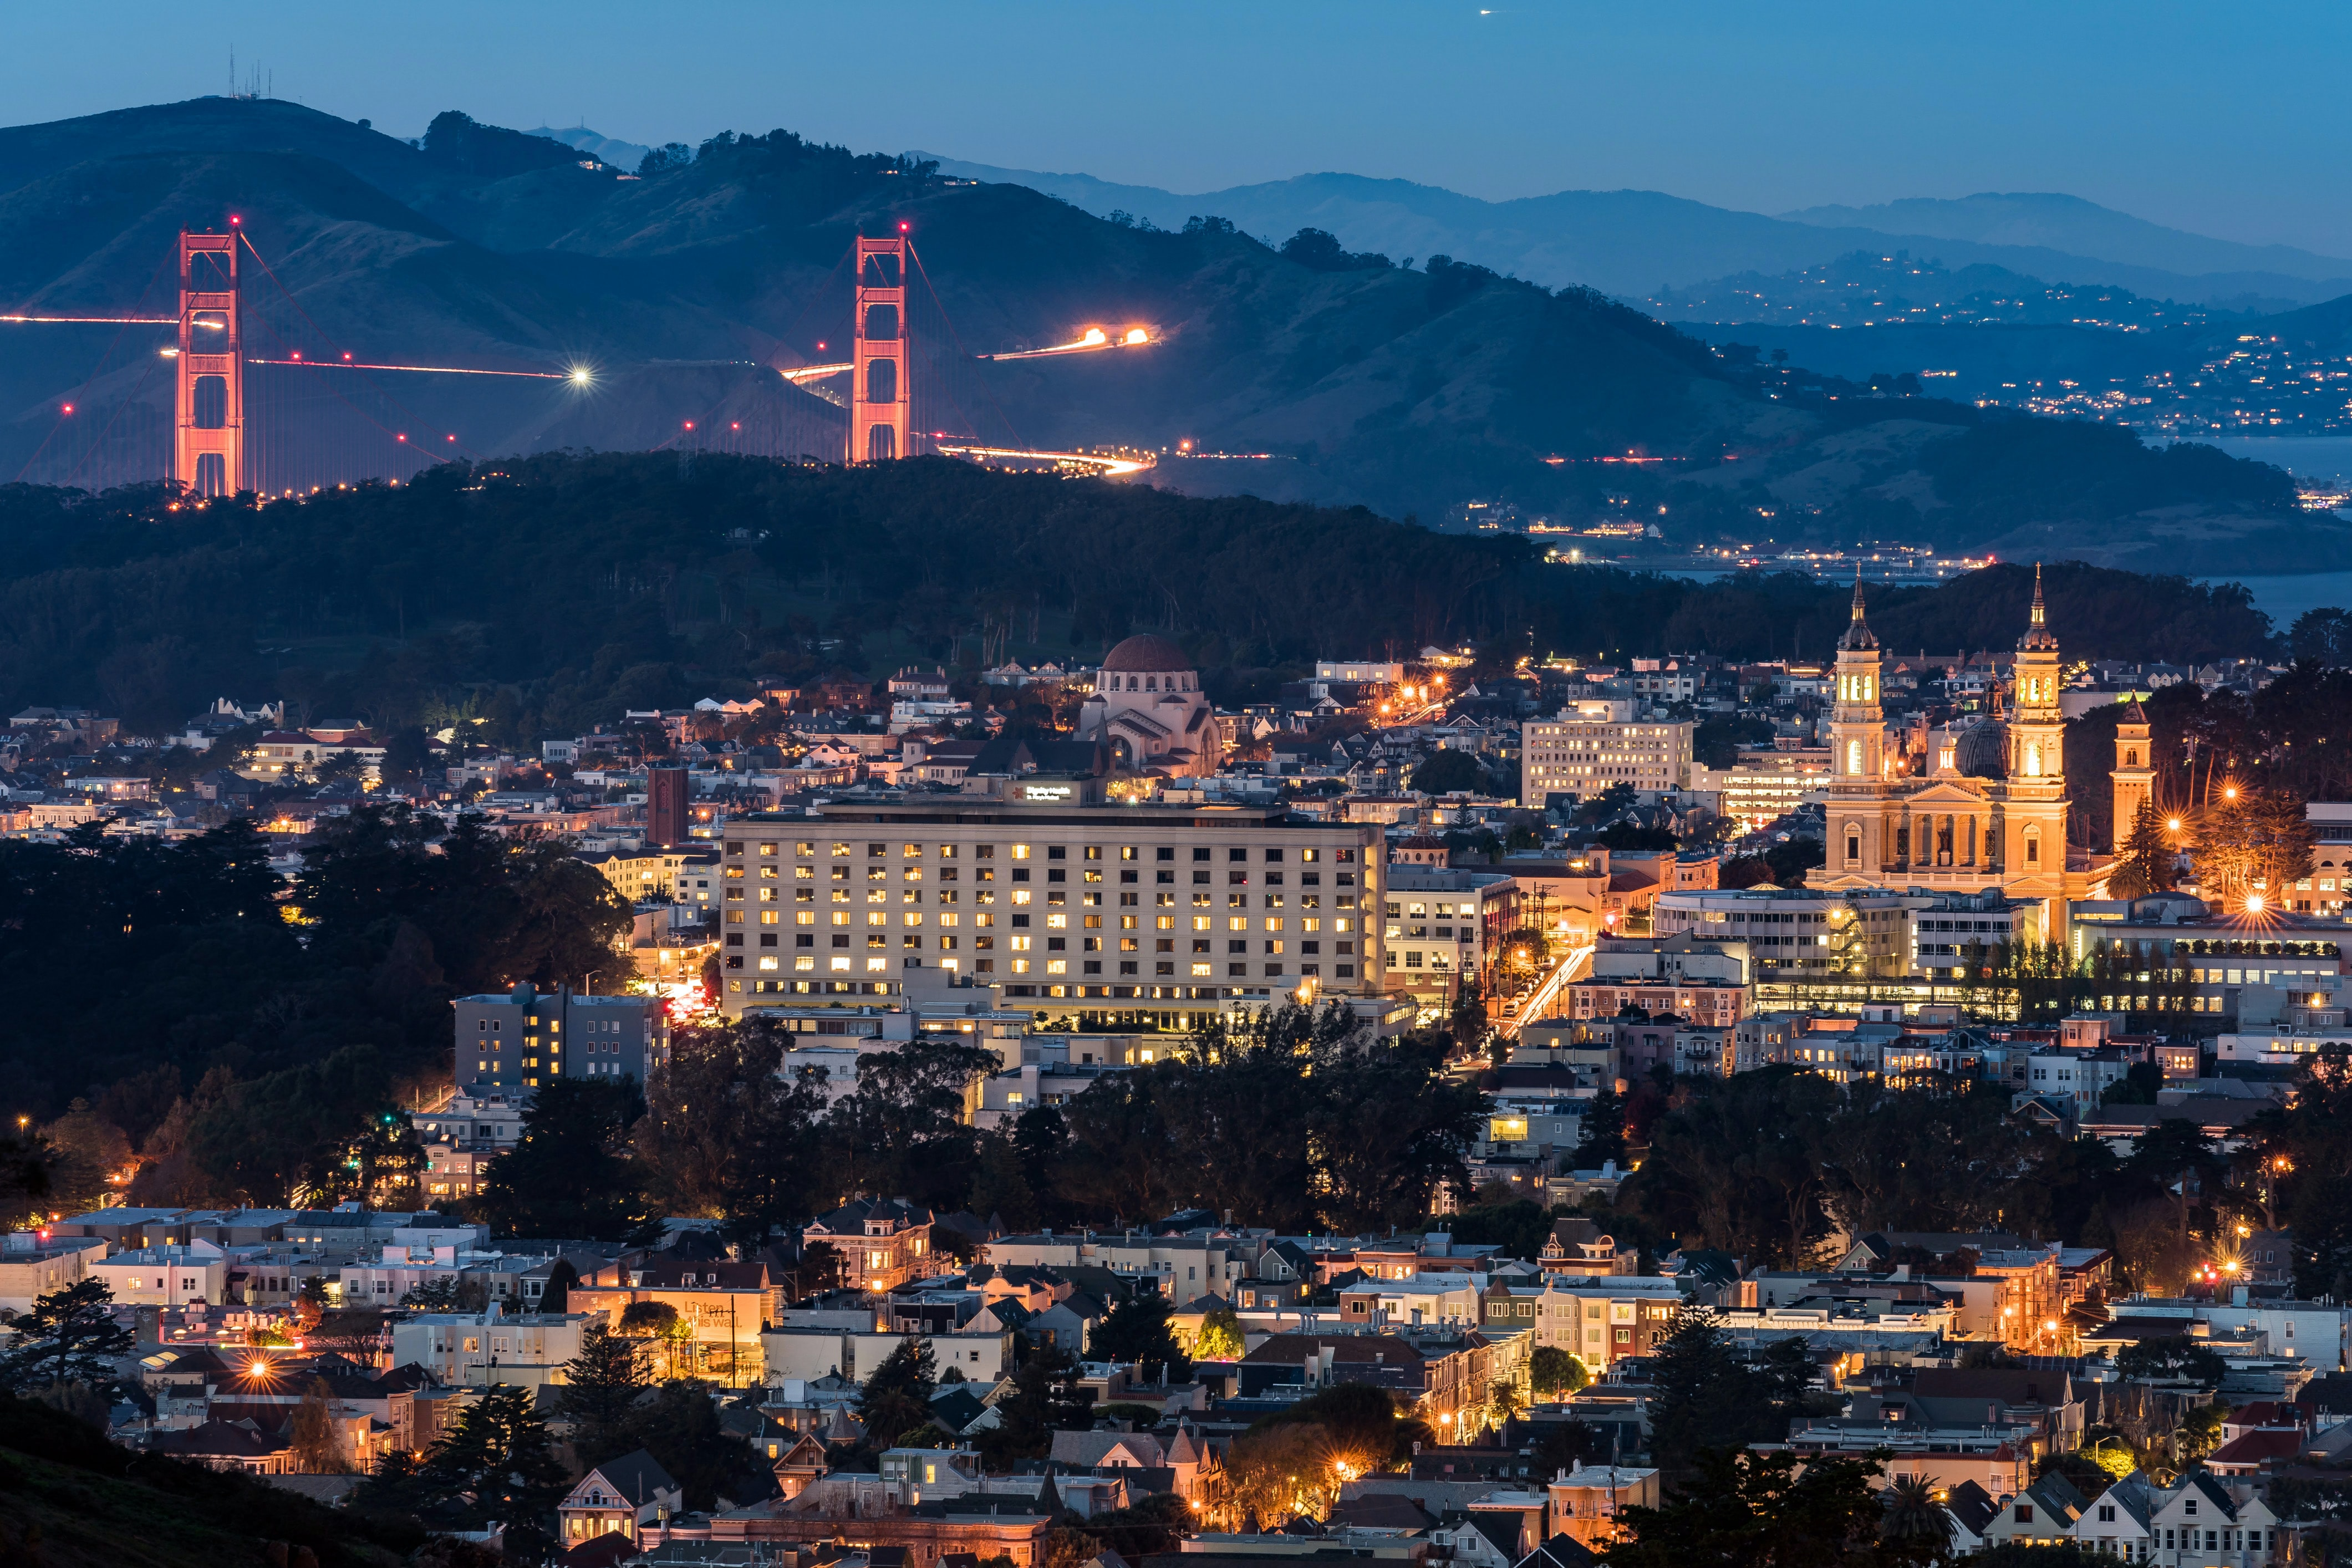 aerial photography of San Francisco, California at nighttime